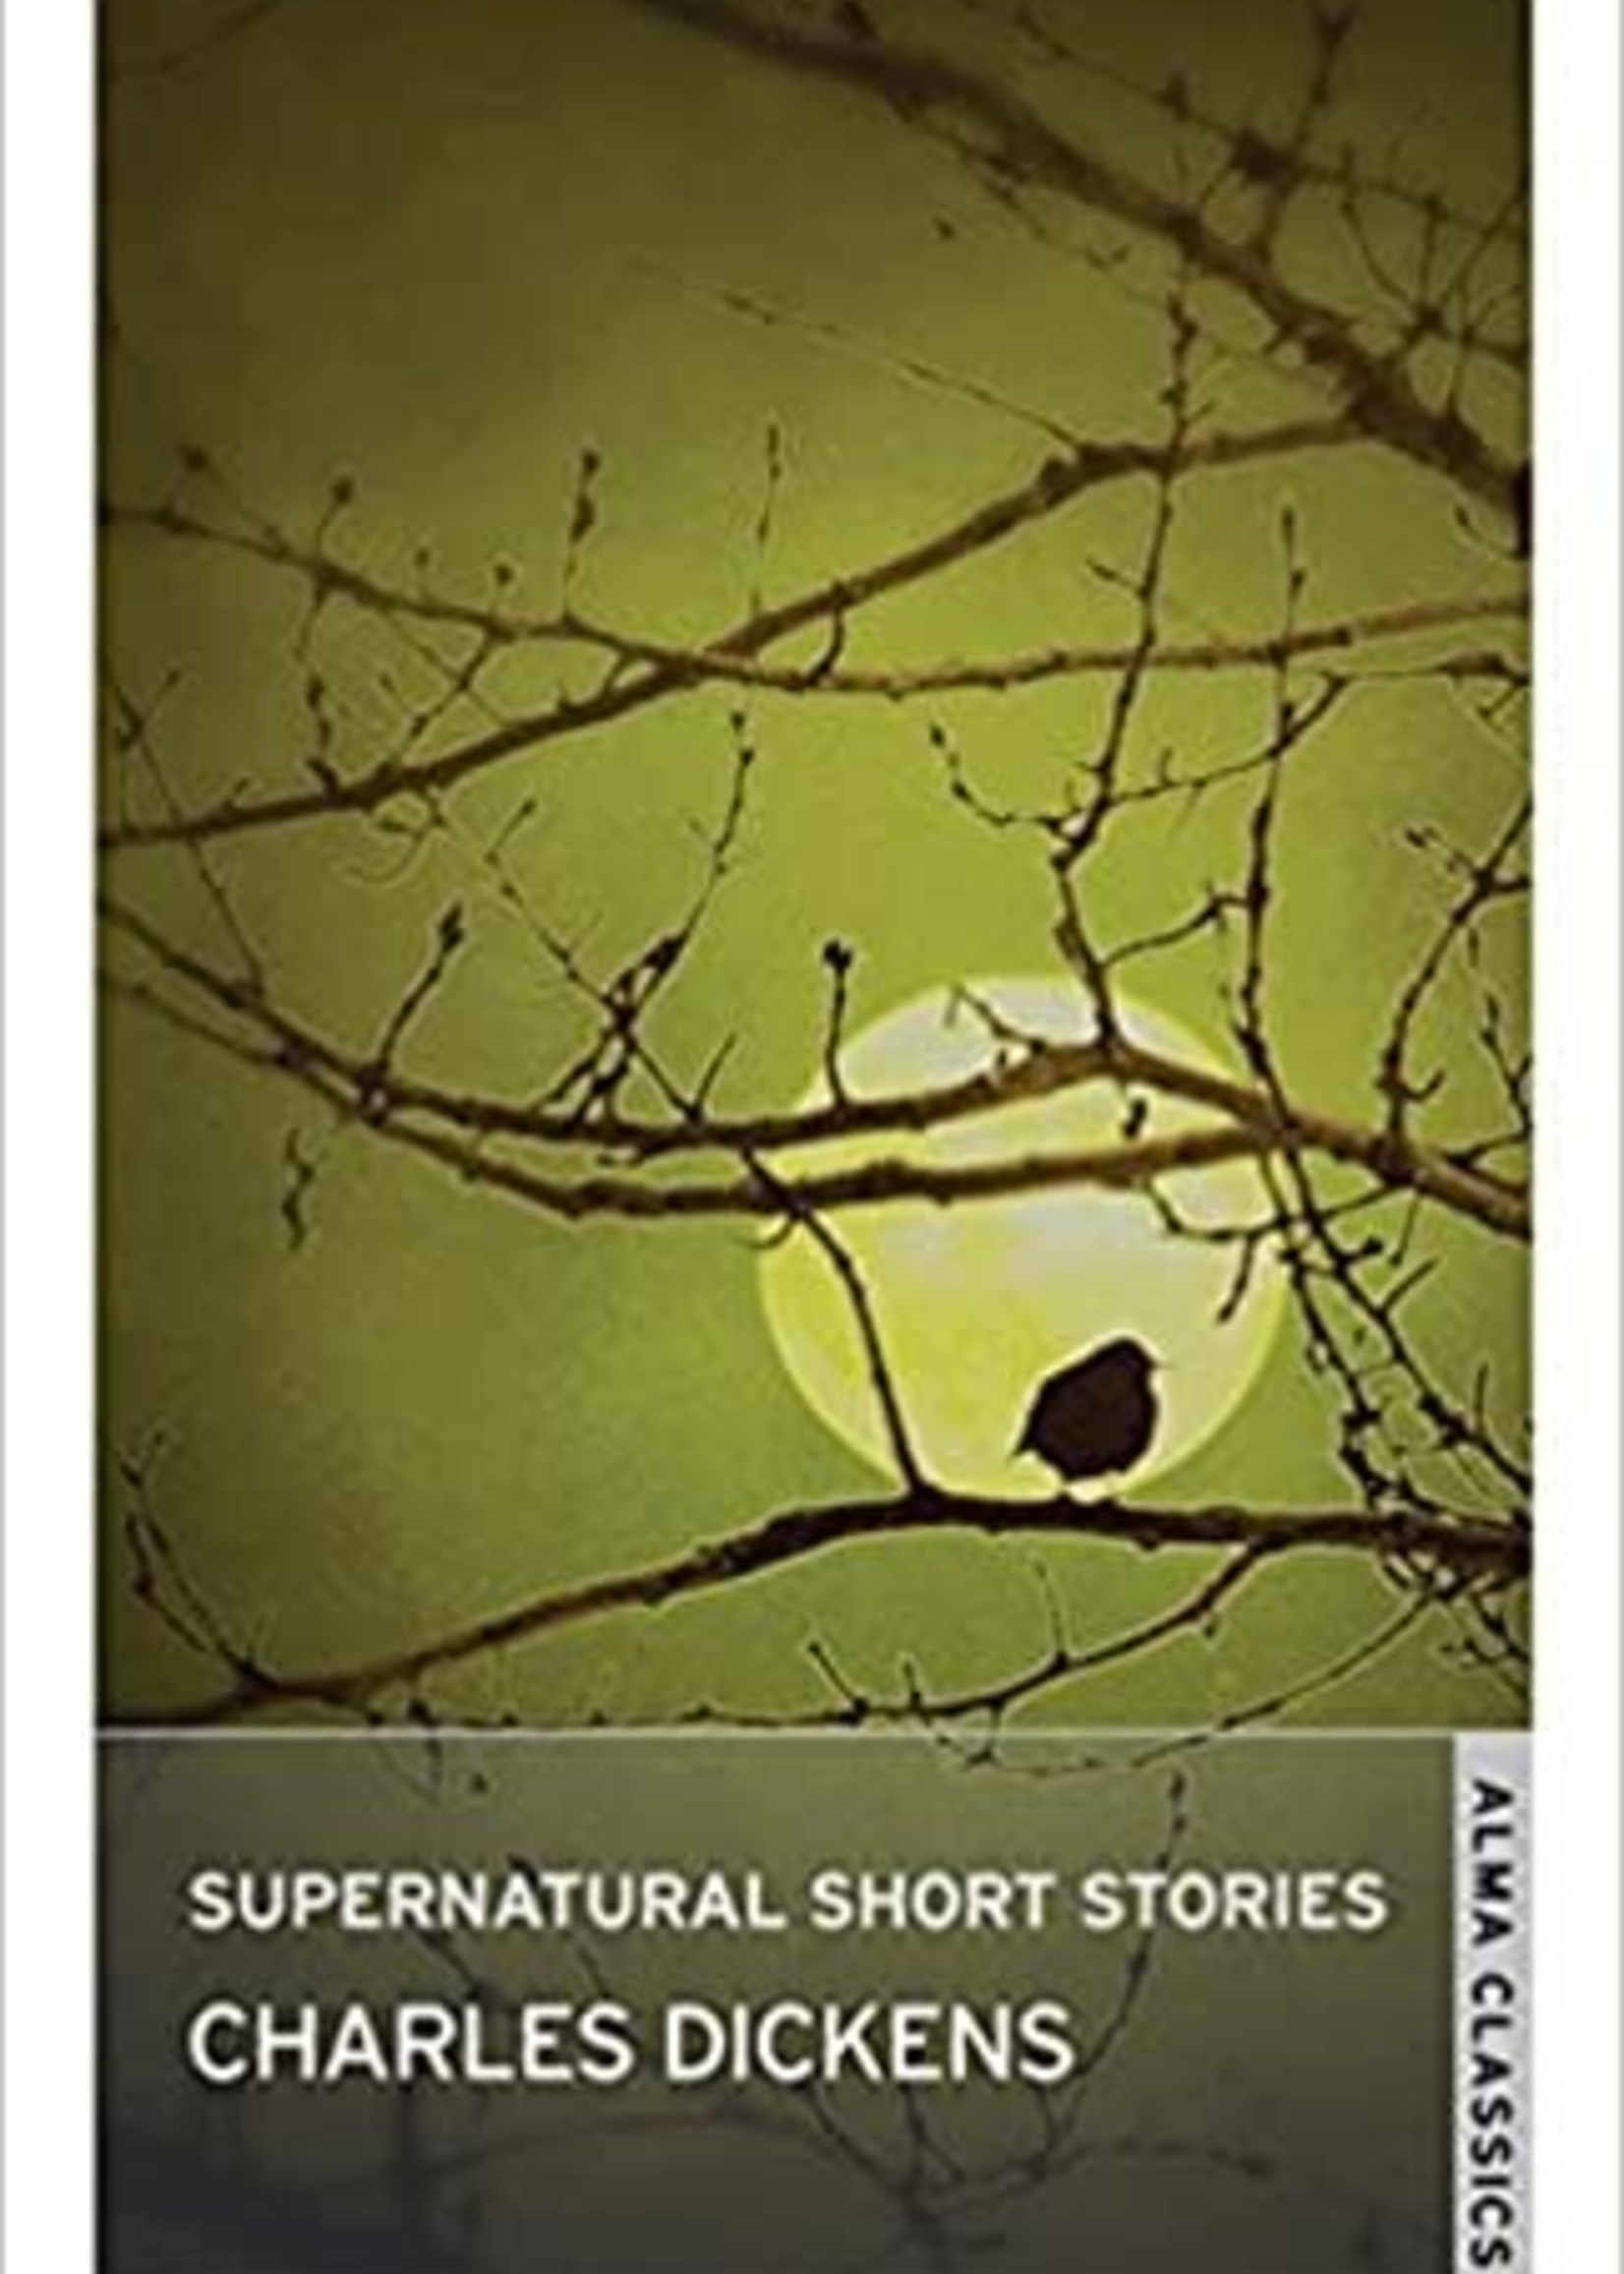 Supernatural Short Stories by Charles Dickens